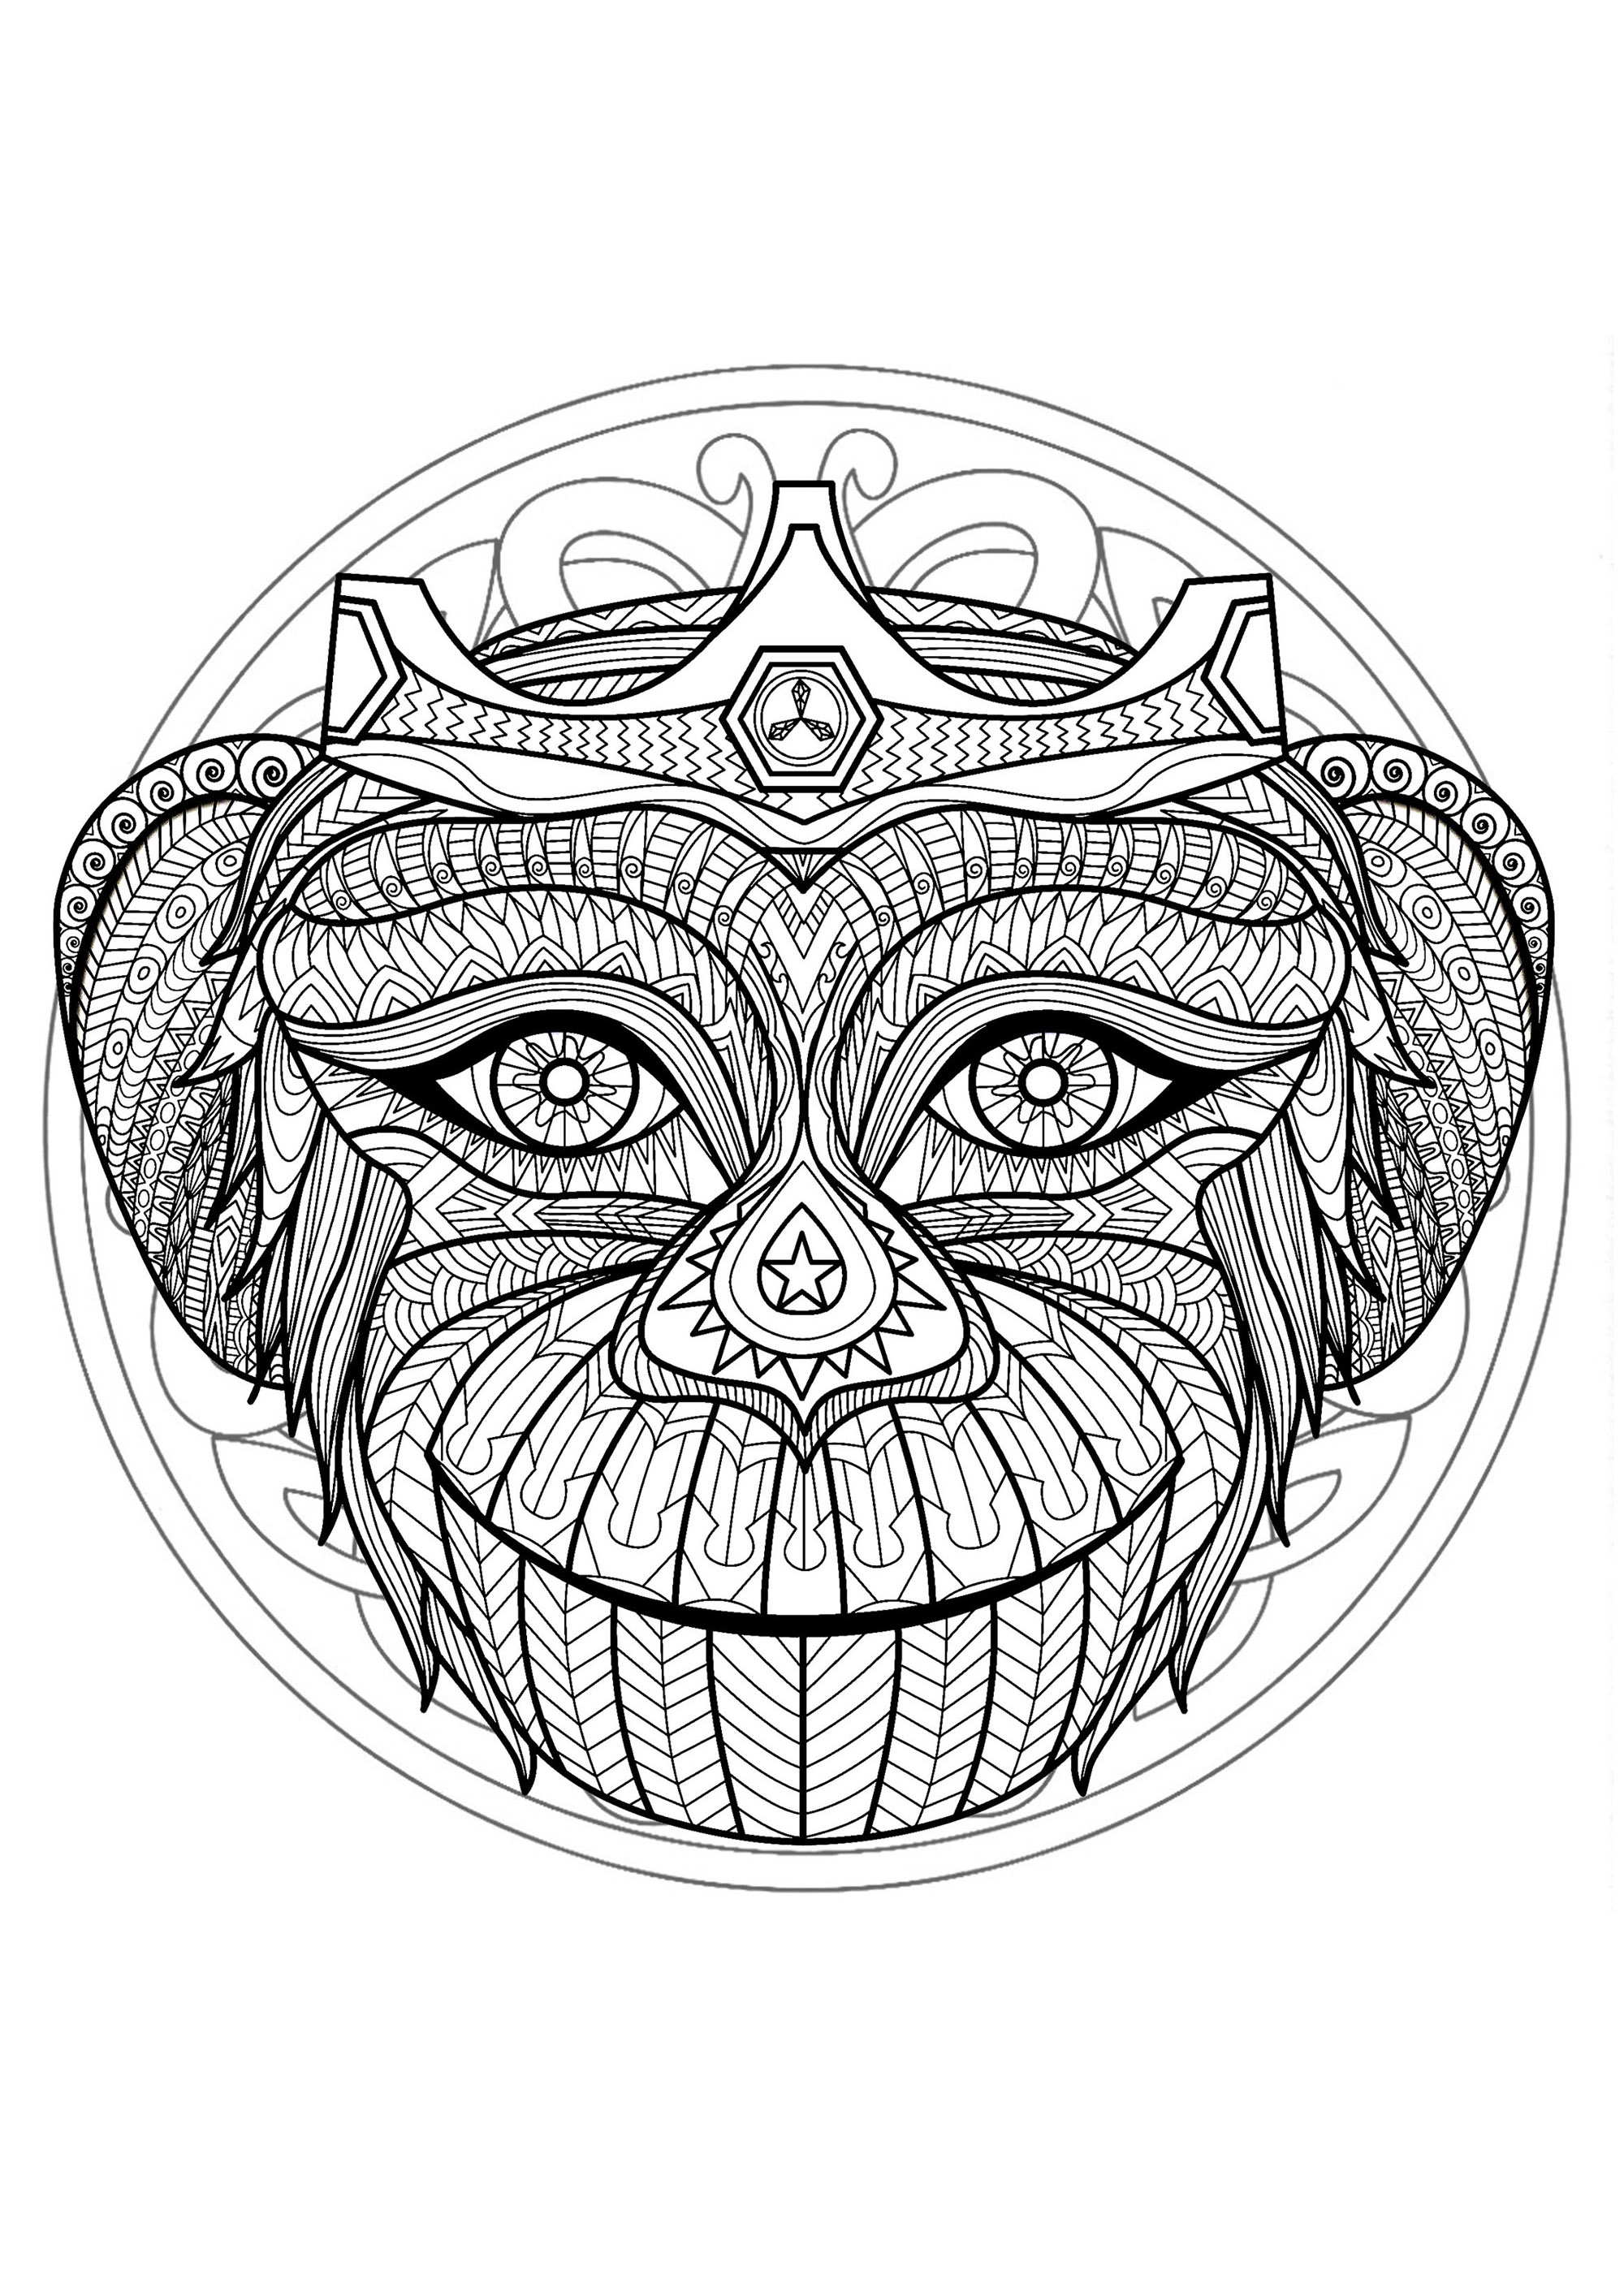 Mandala to color with very gorgeous Monkey head and beautiful interlaced patterns in background